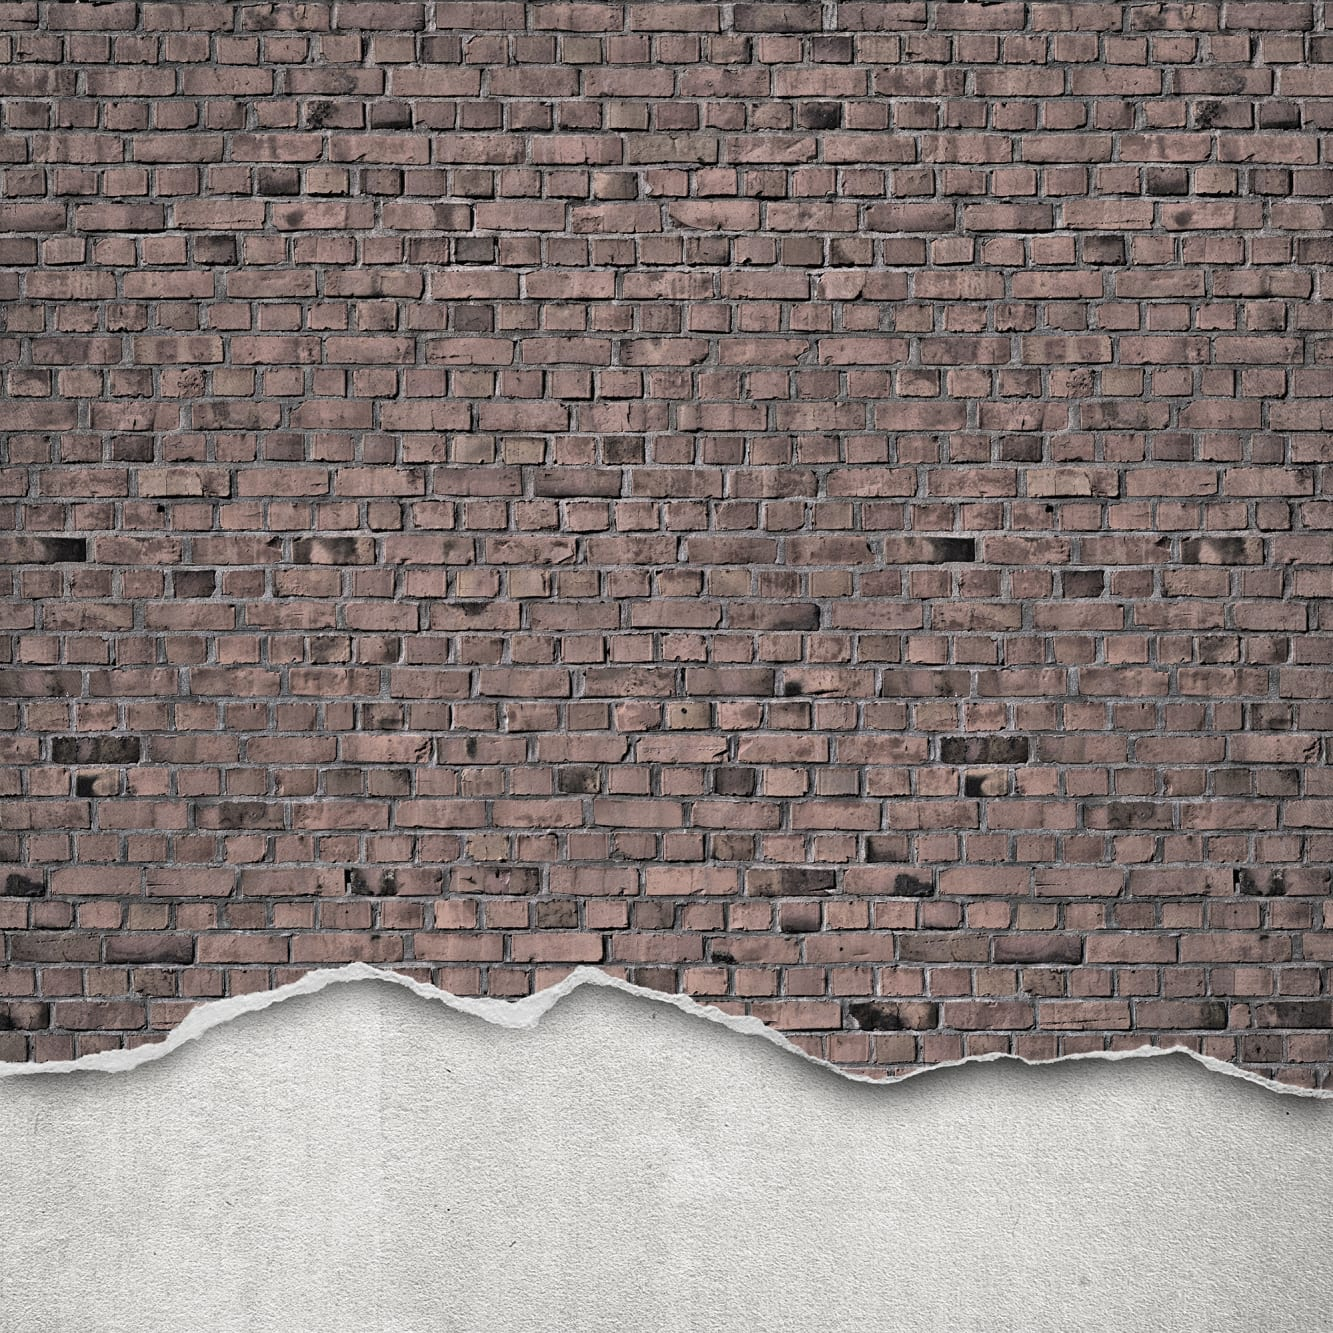 Well worn brick wall old style r12223 rebel walls en gb for Brick types and styles